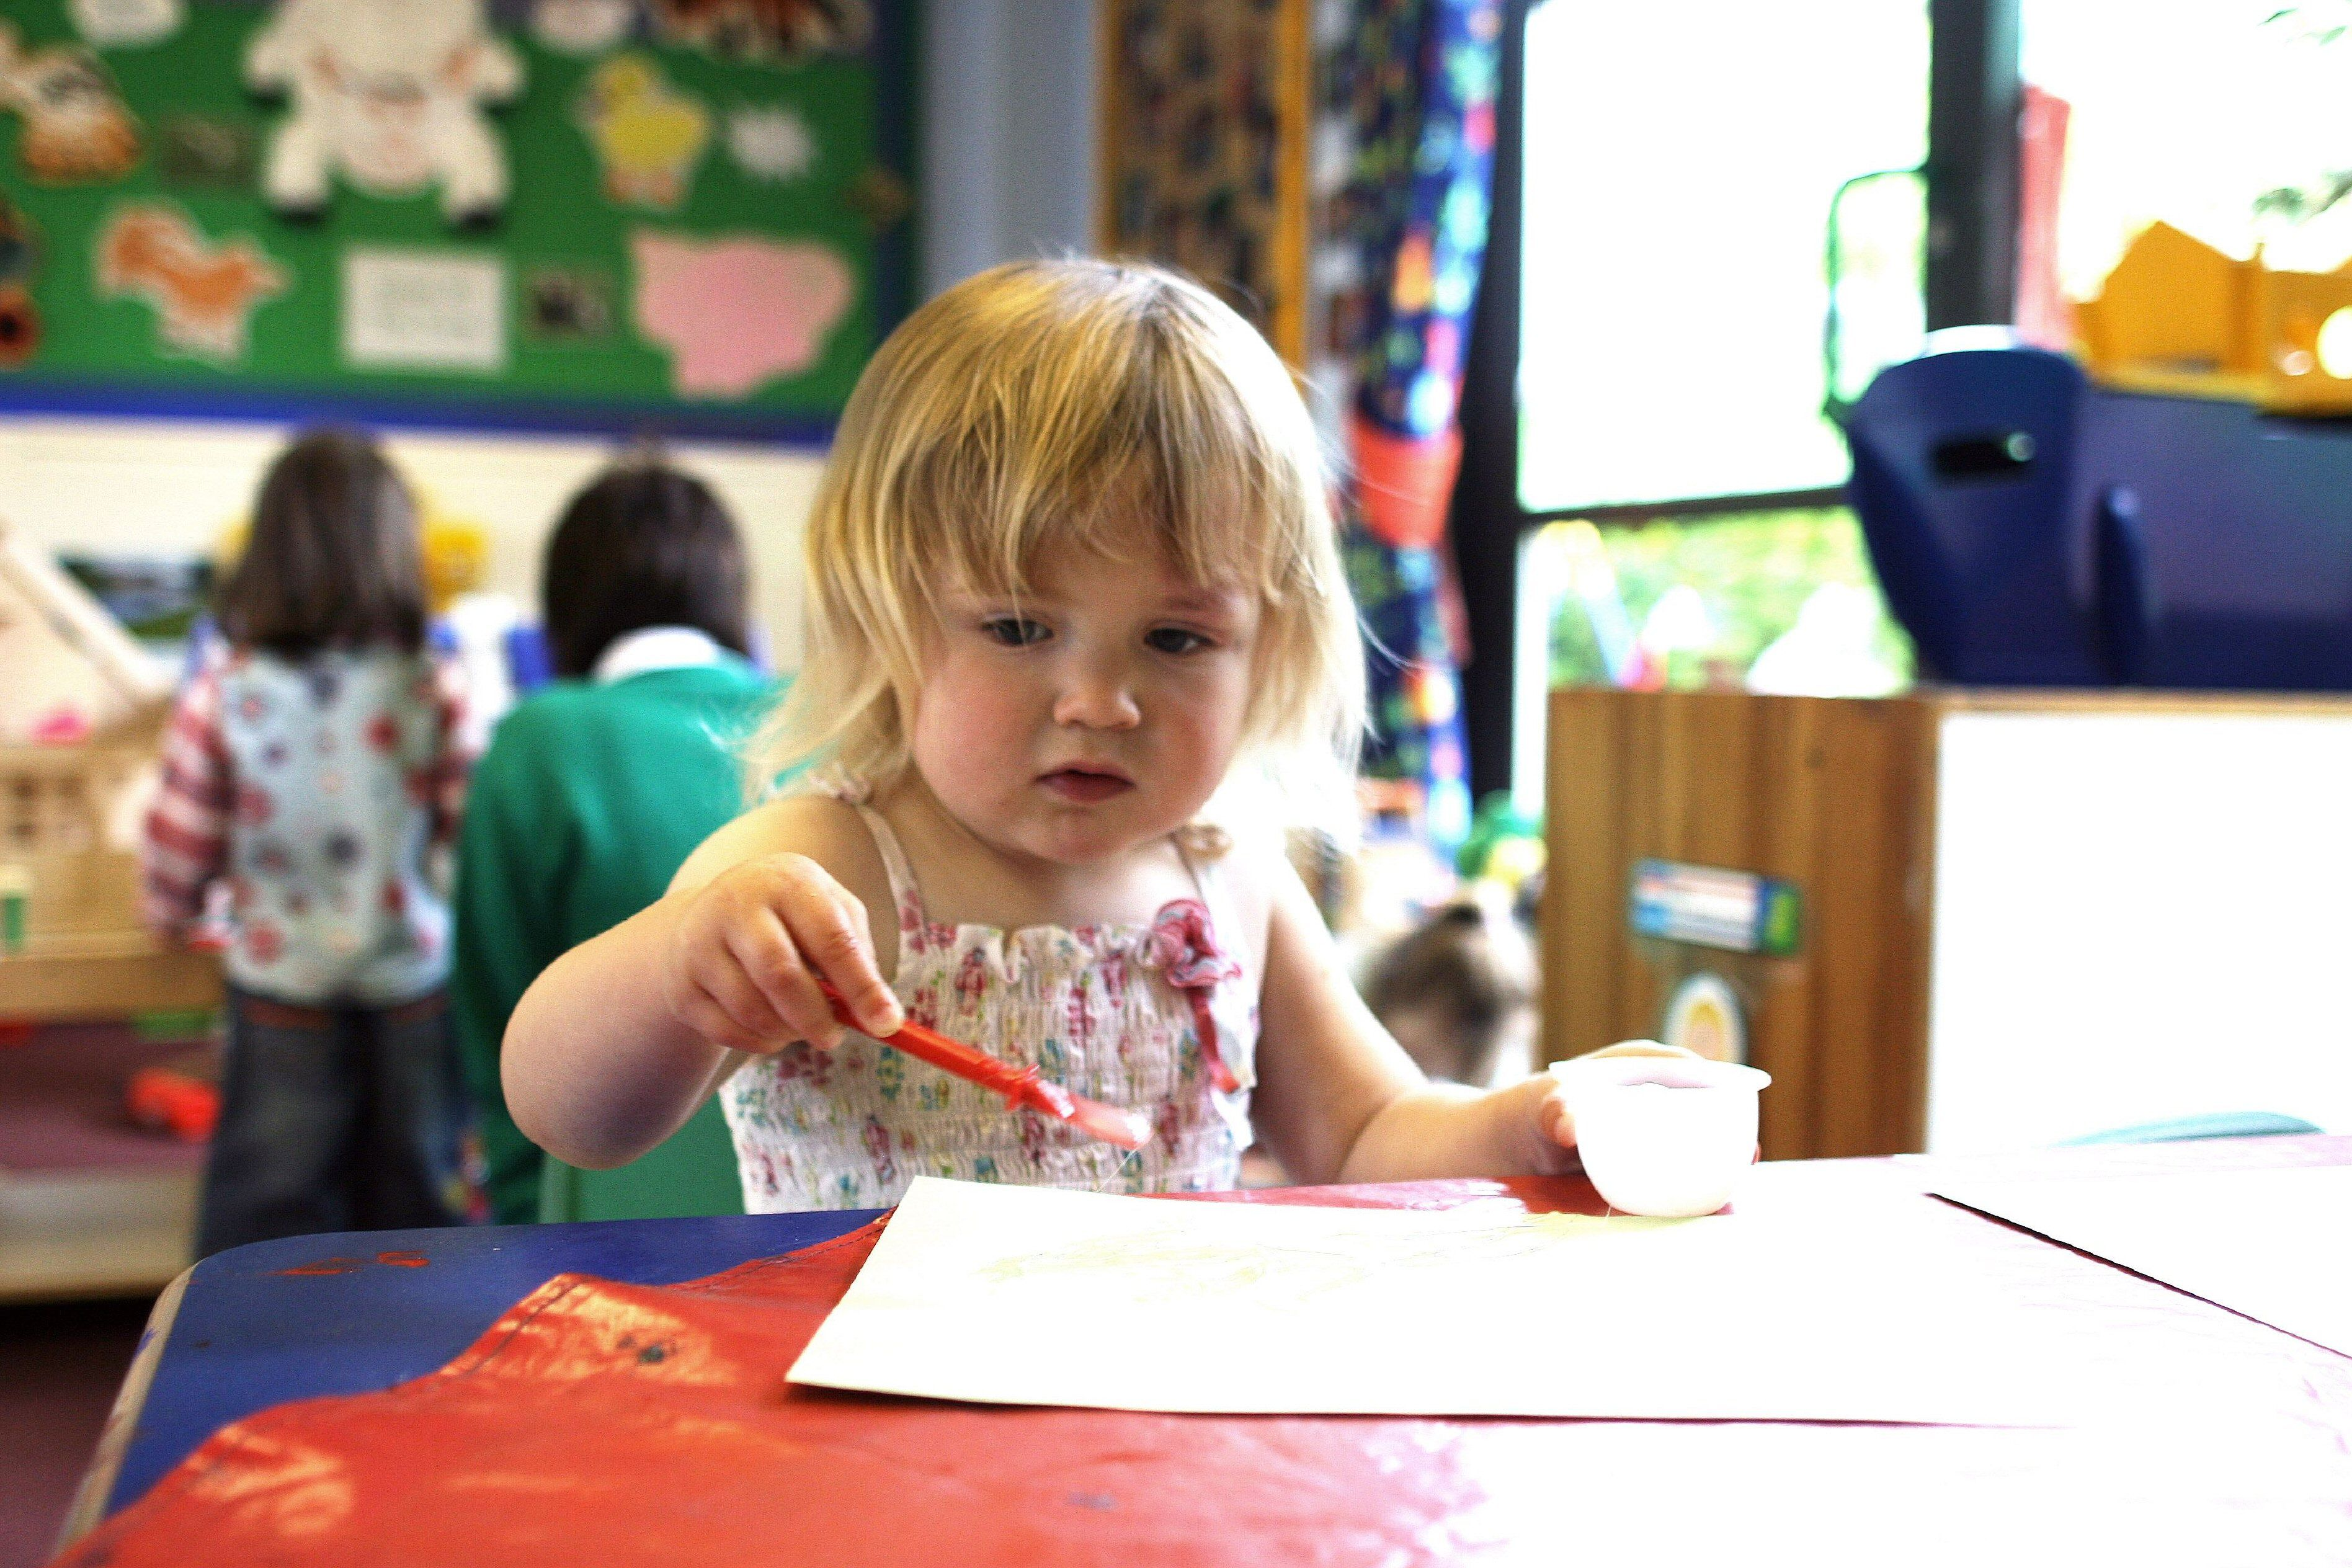 Children enjoy many fun and engaging arts and crafts projects at ...